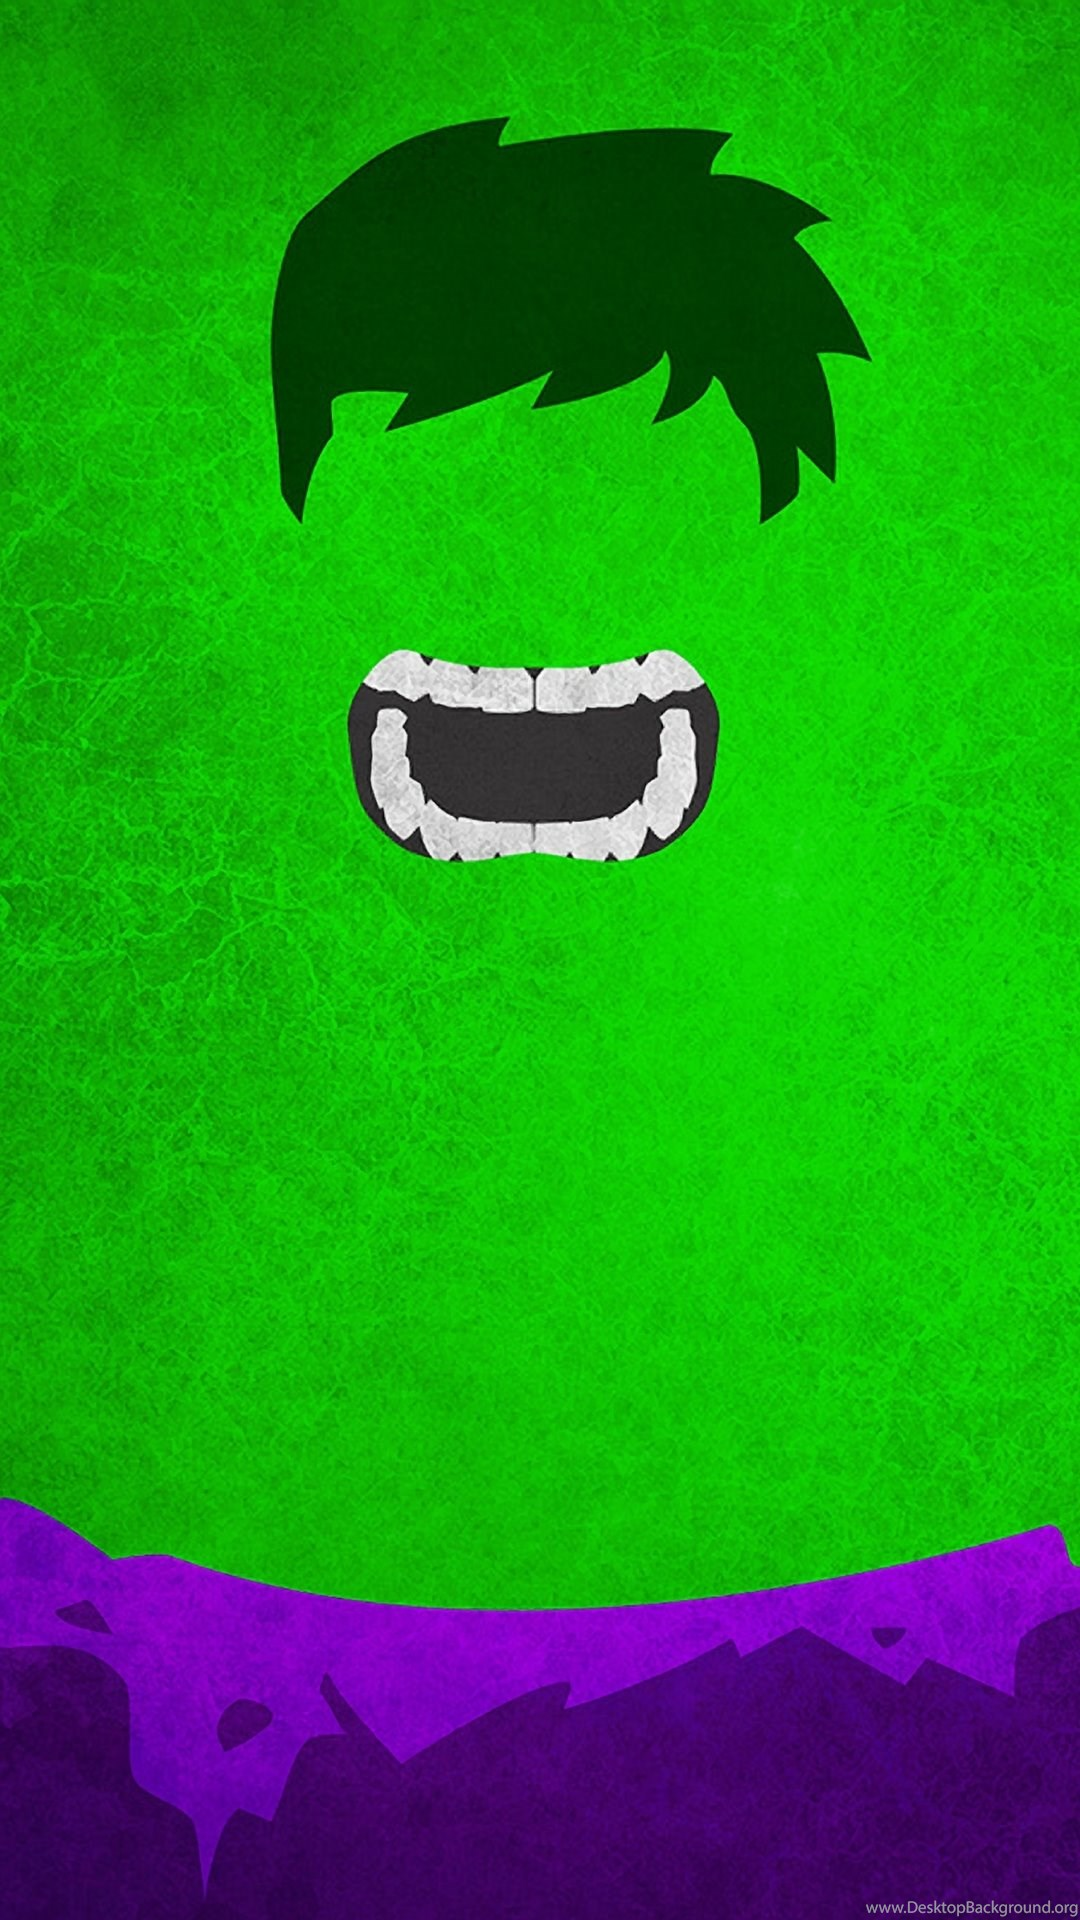 Asus Zenfone 2 Wallpaper: The Hulk Mobile Android Wallpapers